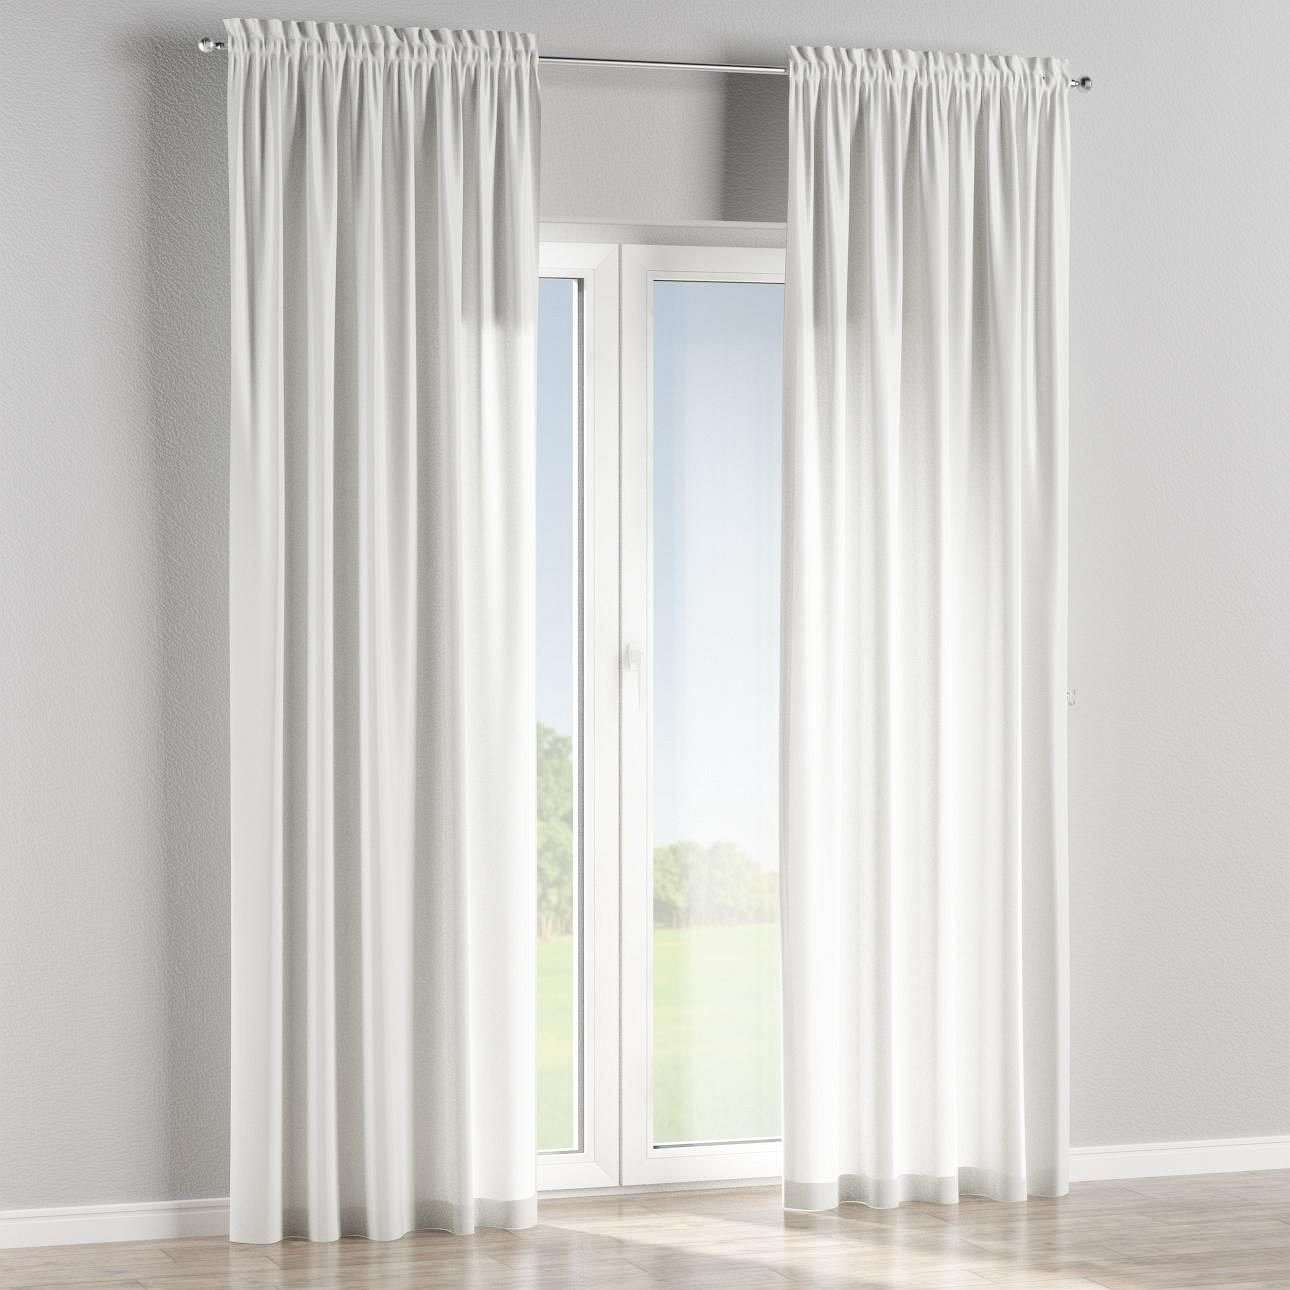 Slot and frill curtains in collection Christmas , fabric: 630-60